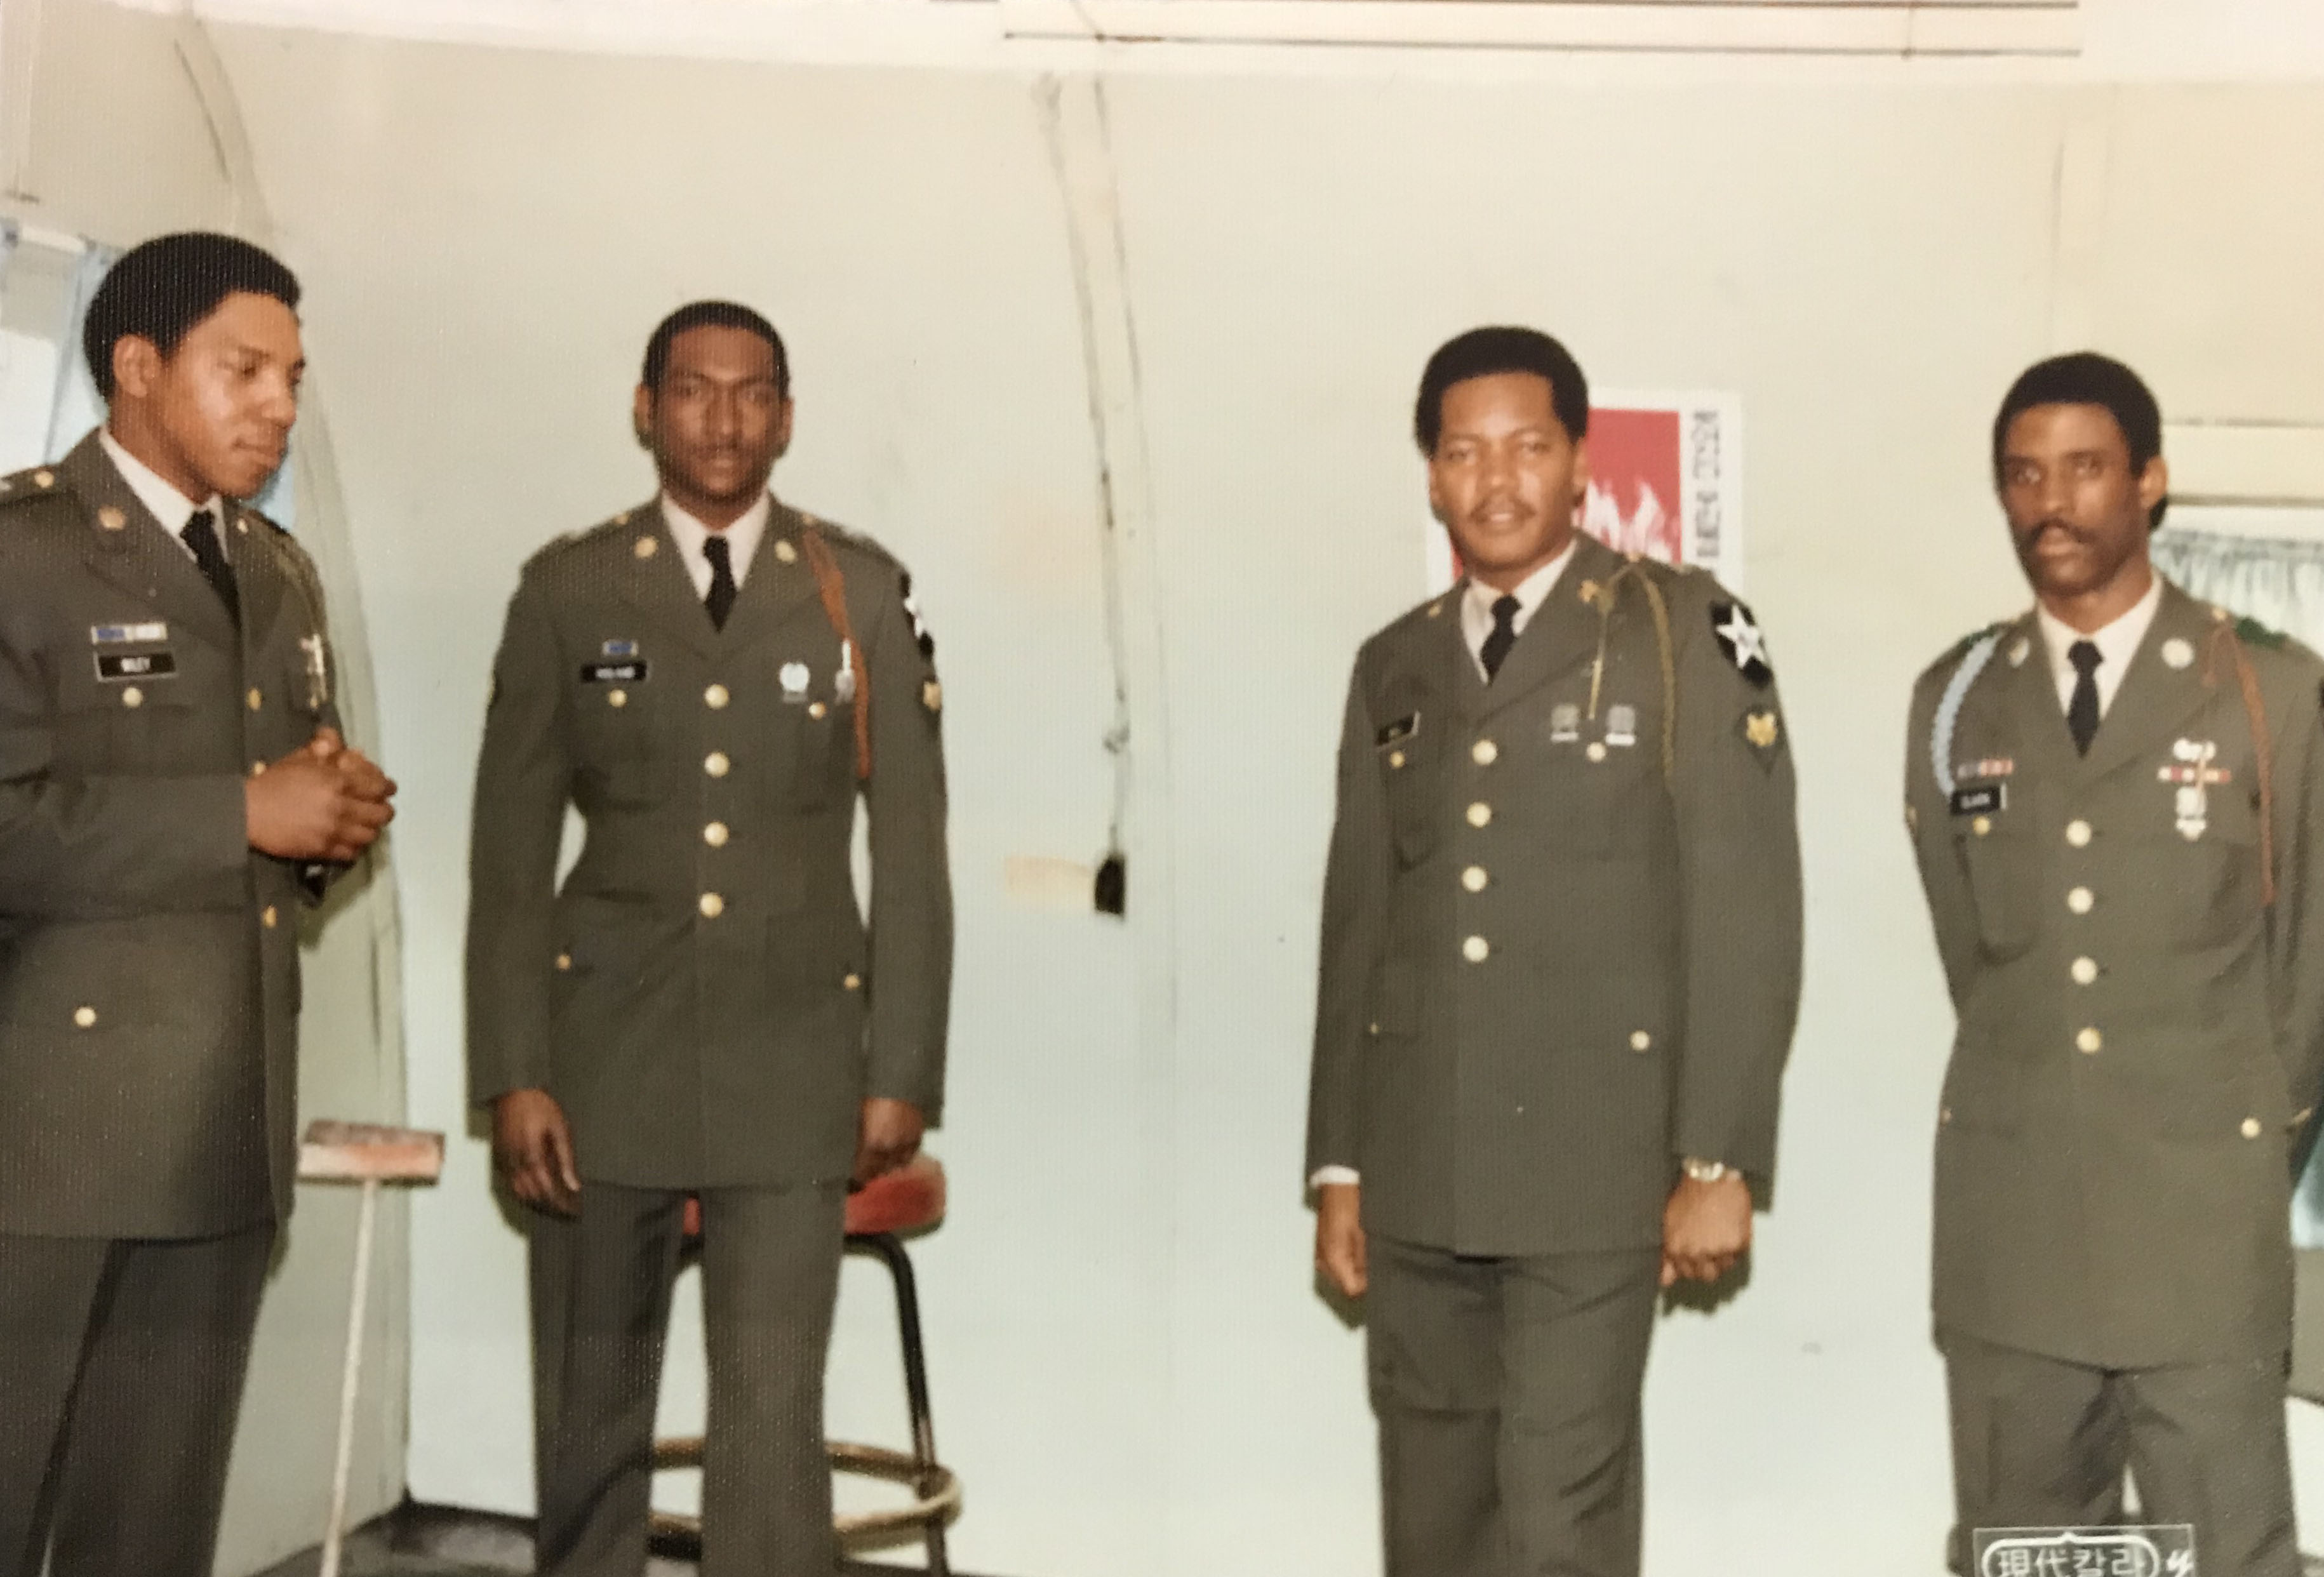 "<div class=""meta image-caption""><div class=""origin-logo origin-image none""><span>none</span></div><span class=""caption-text"">Kenneth Bell with fellow servicemen at a promotion ceremony (Kenneth Bell)</span></div>"